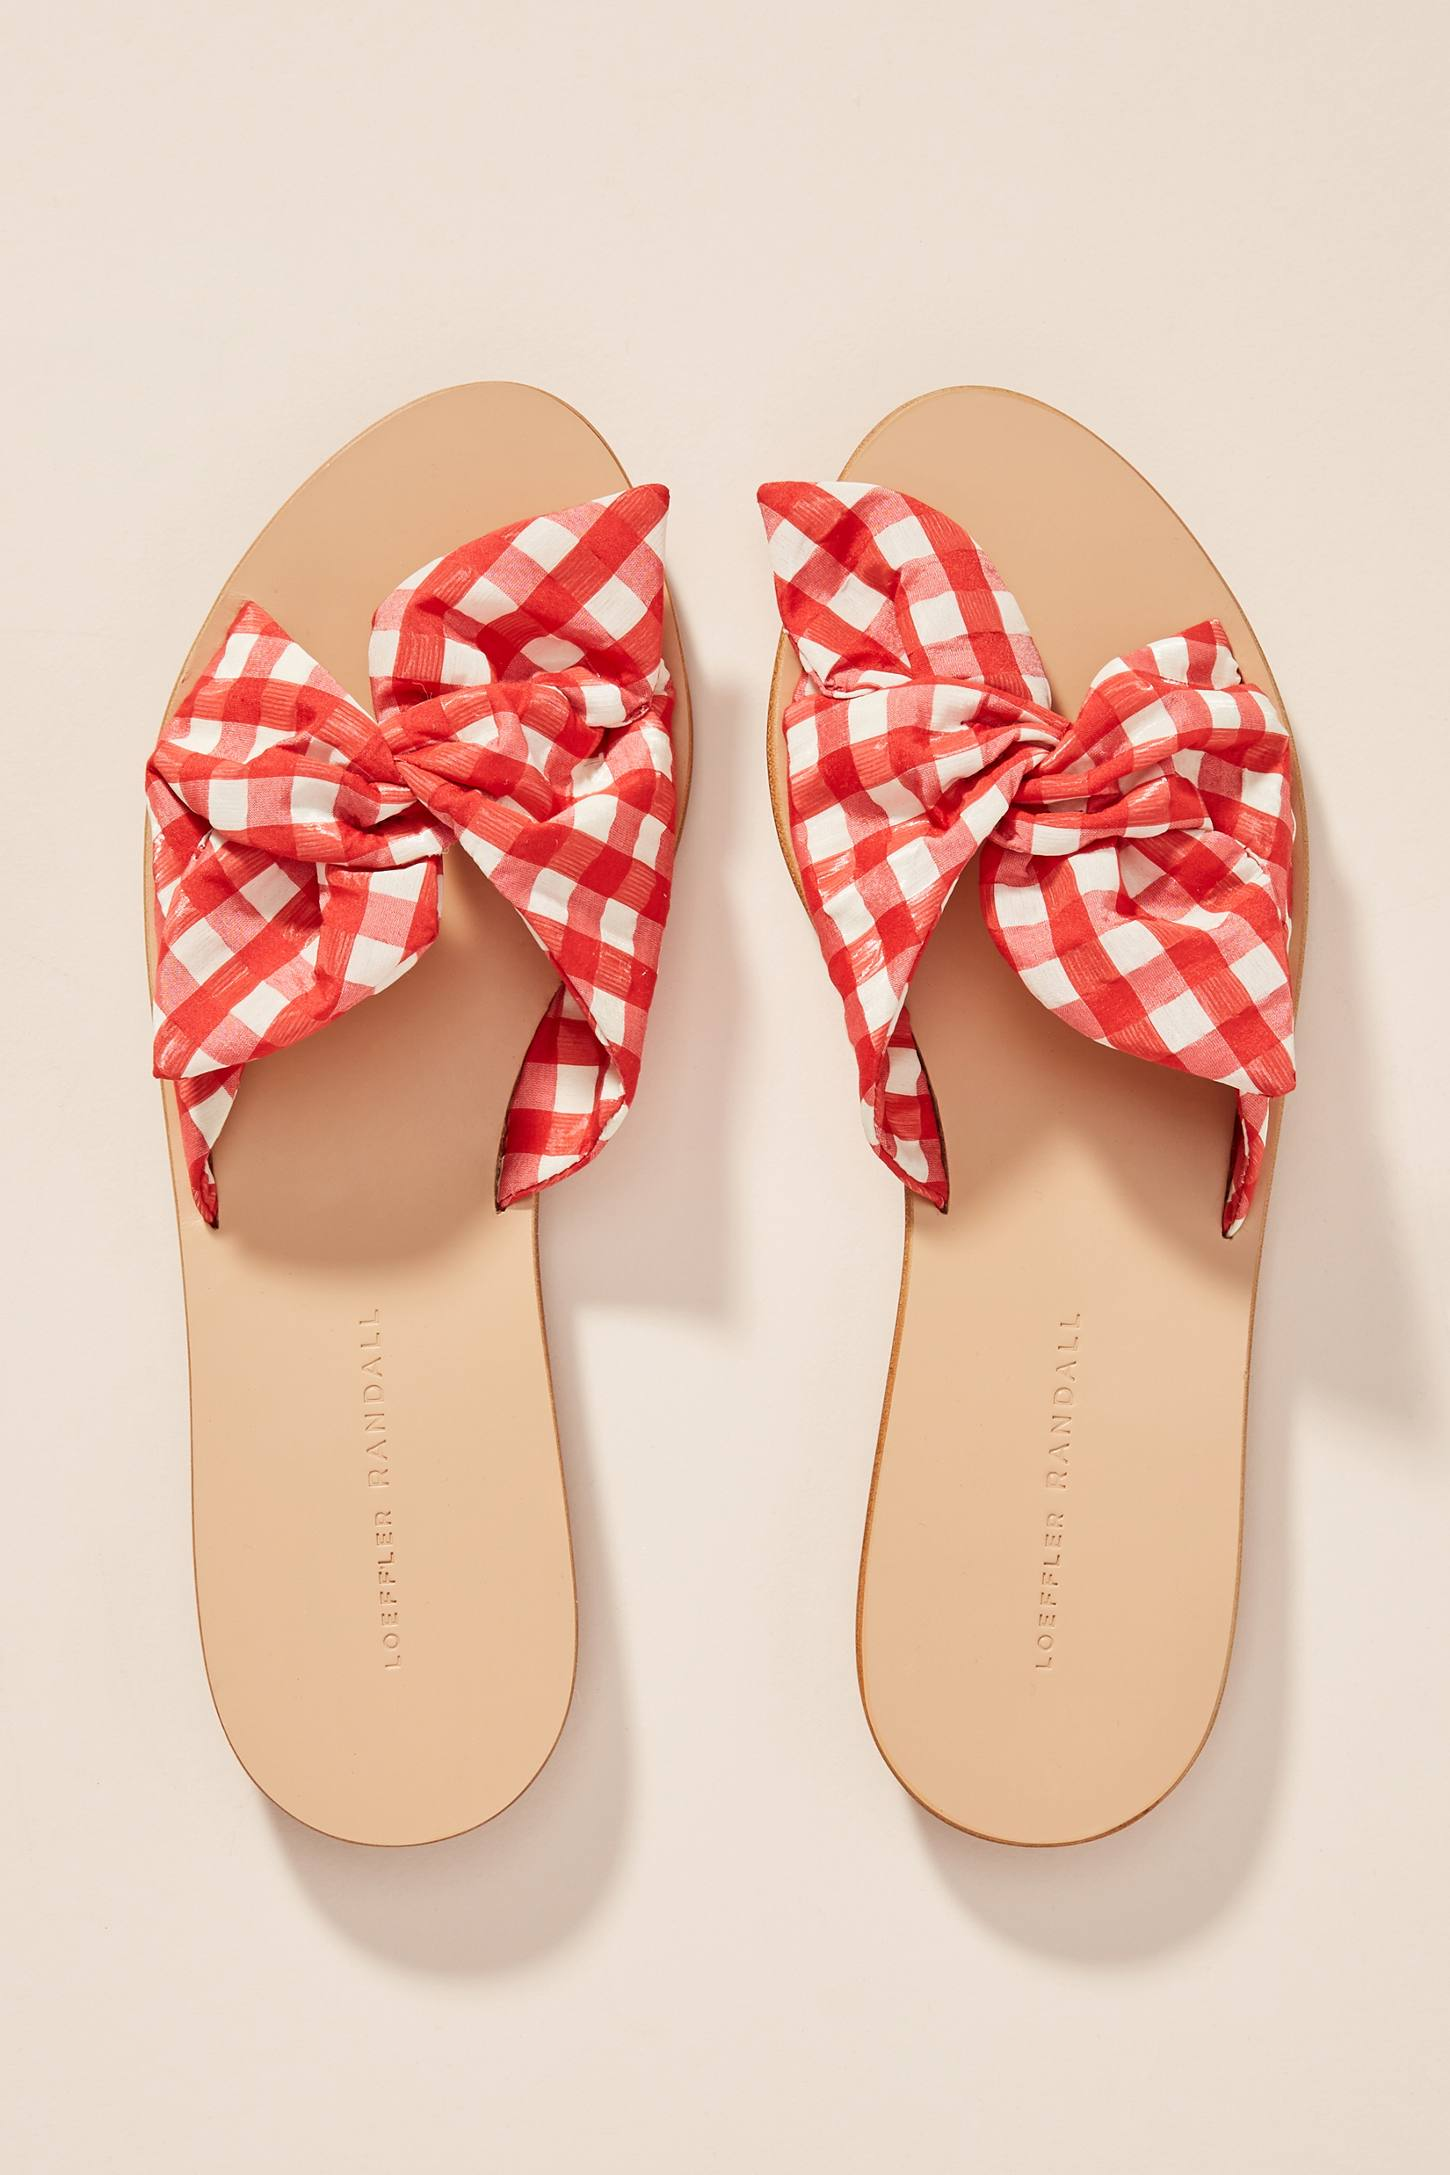 Red Gingham Knotted Slide Sandals